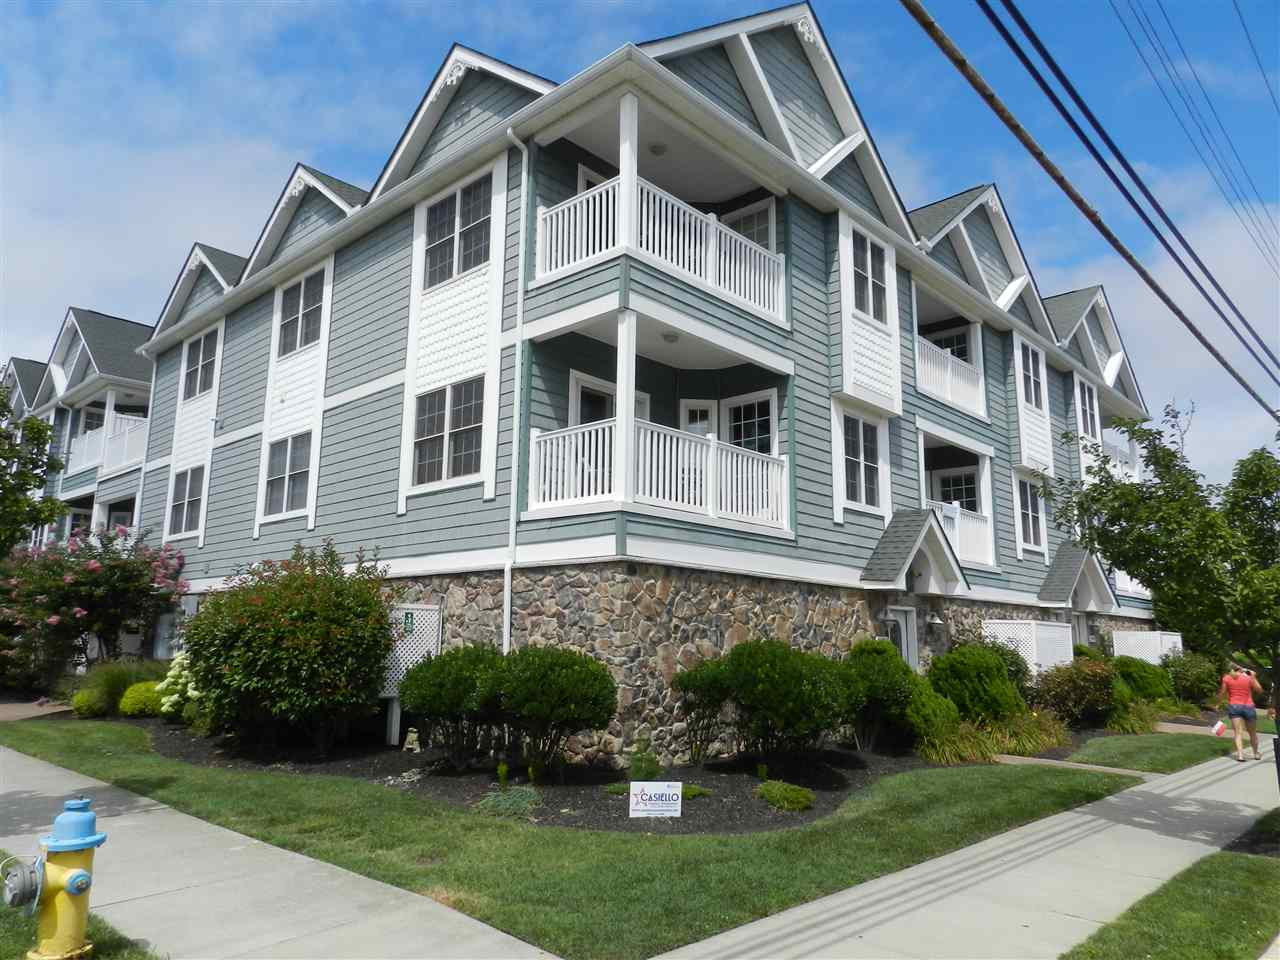 237, Unit 101 Hildreth, Wildwood